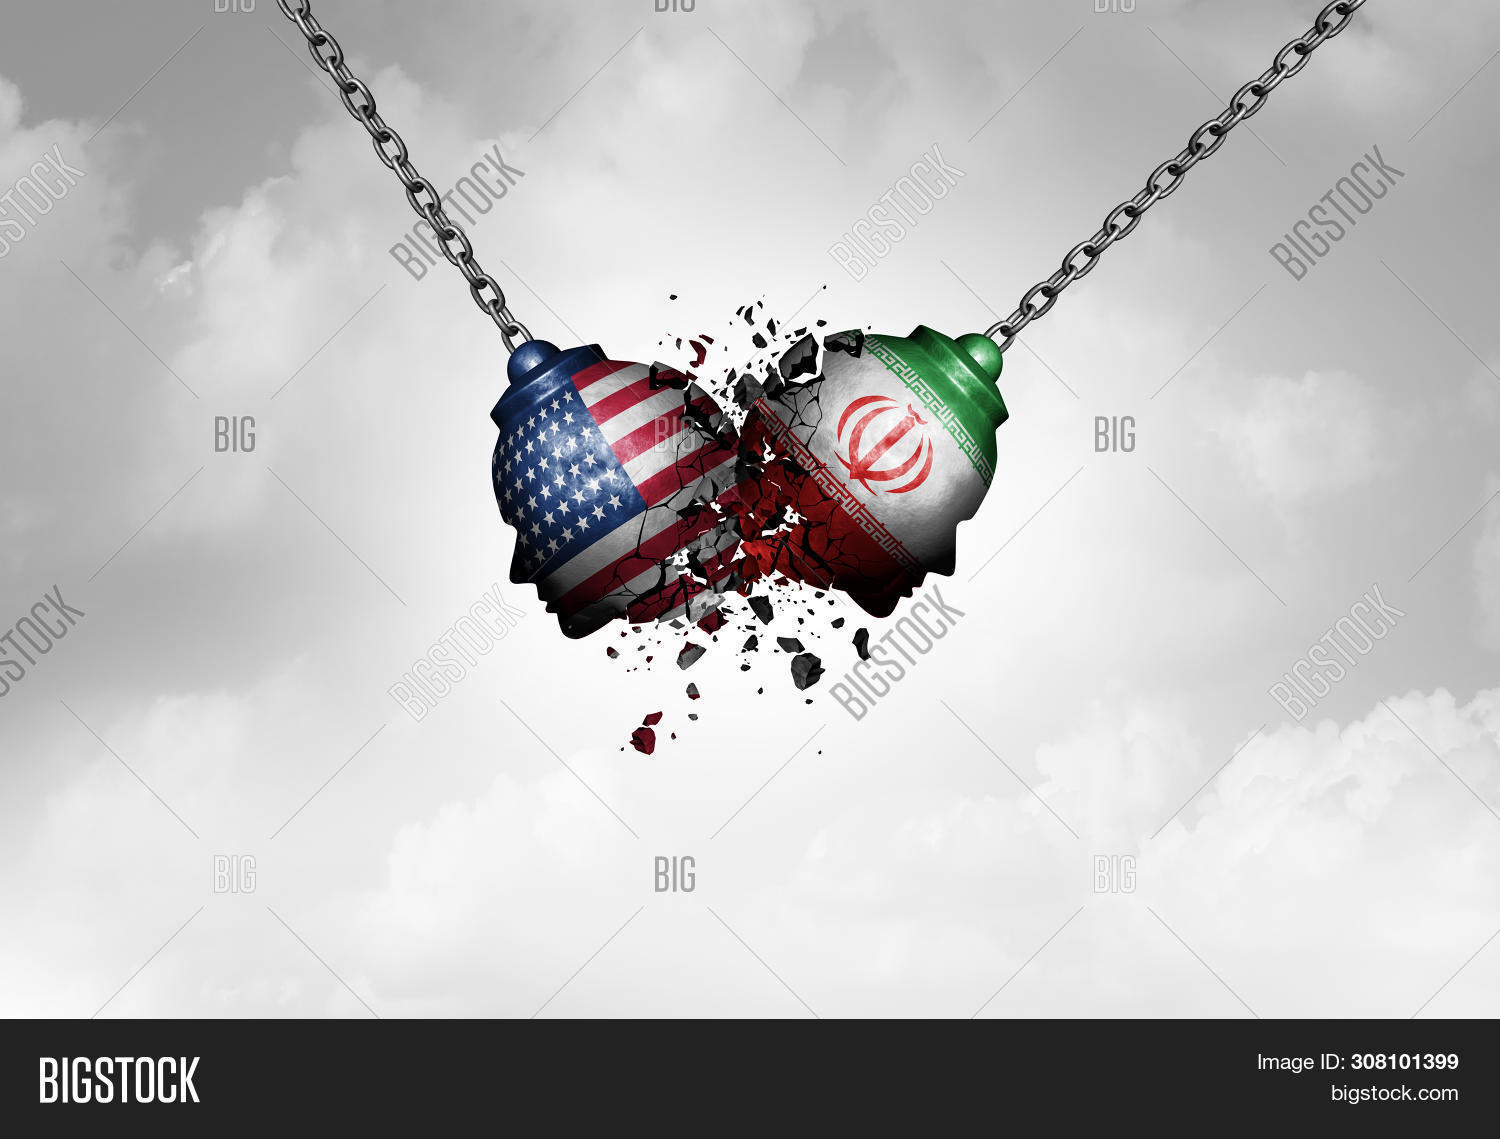 3D,America,American,East,Iran,Iranian,Middle,States,Tehran,US,USA,United,Washington,aggression,agreement,battle,clash,competition,confrontation,crack,cracked,current,deal,diplomatic,dispute,divided,economic,economy,fighting,foreign,geopolitics,gulf,illustration,international,negotiations,news,nuclear,peace,persian,political,politics,relations,restrictions,sanctions,security,style,tensions,torn,war